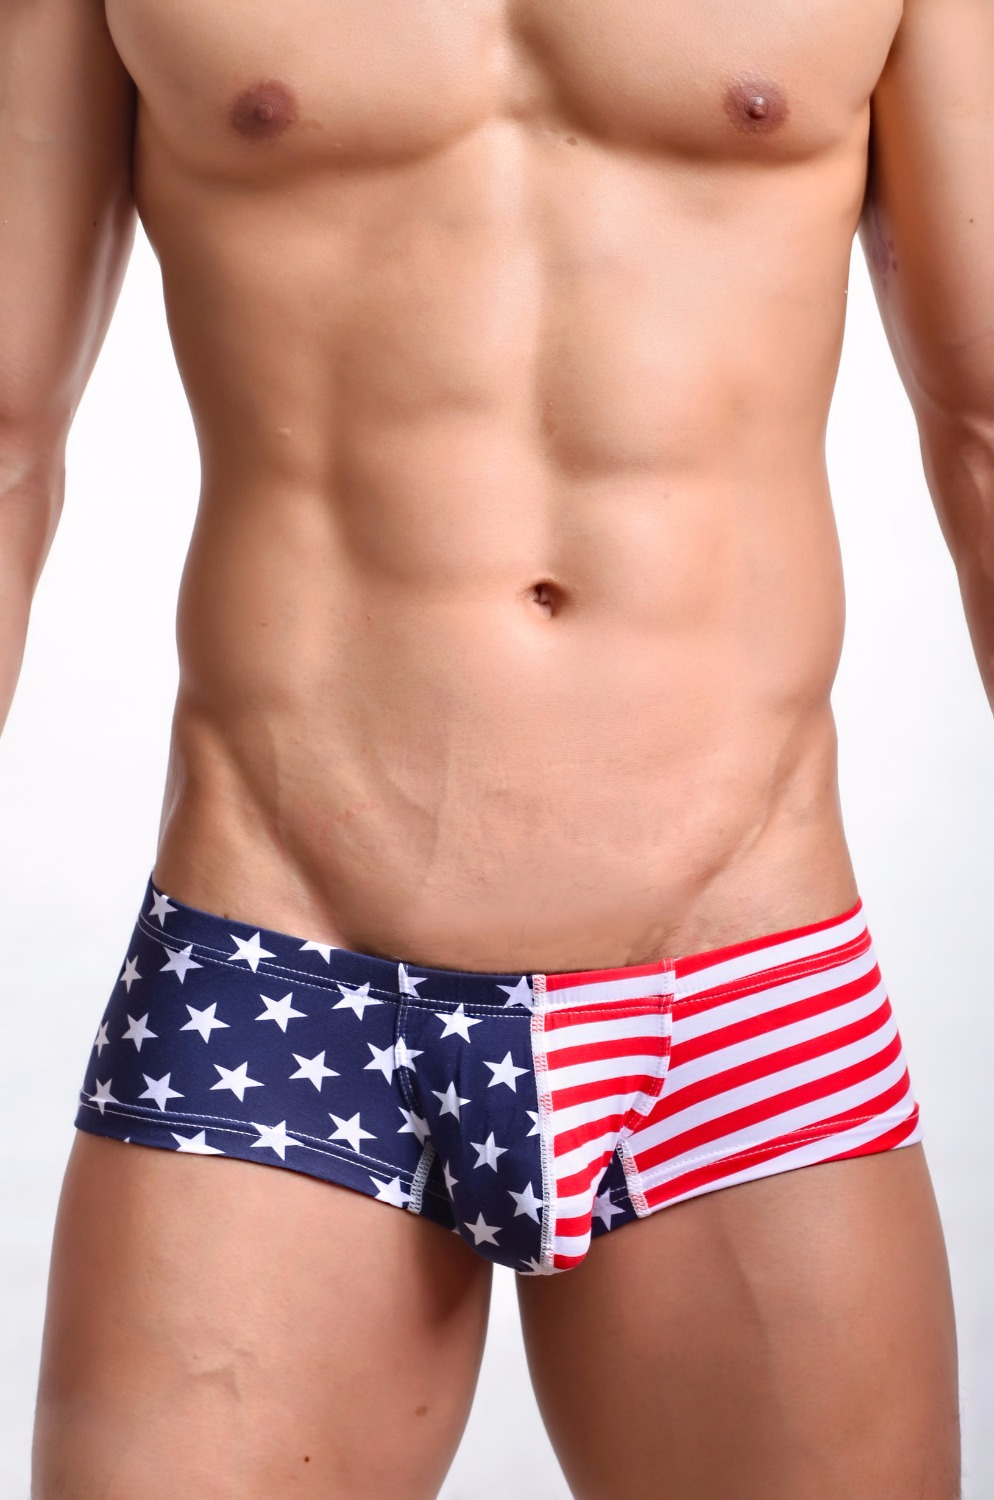 New Mens Sexy Underwear Boxer Shorts Trunks New Low Waist Designed Mens Boxers Cotton Gay Penis Pouch S M L XL